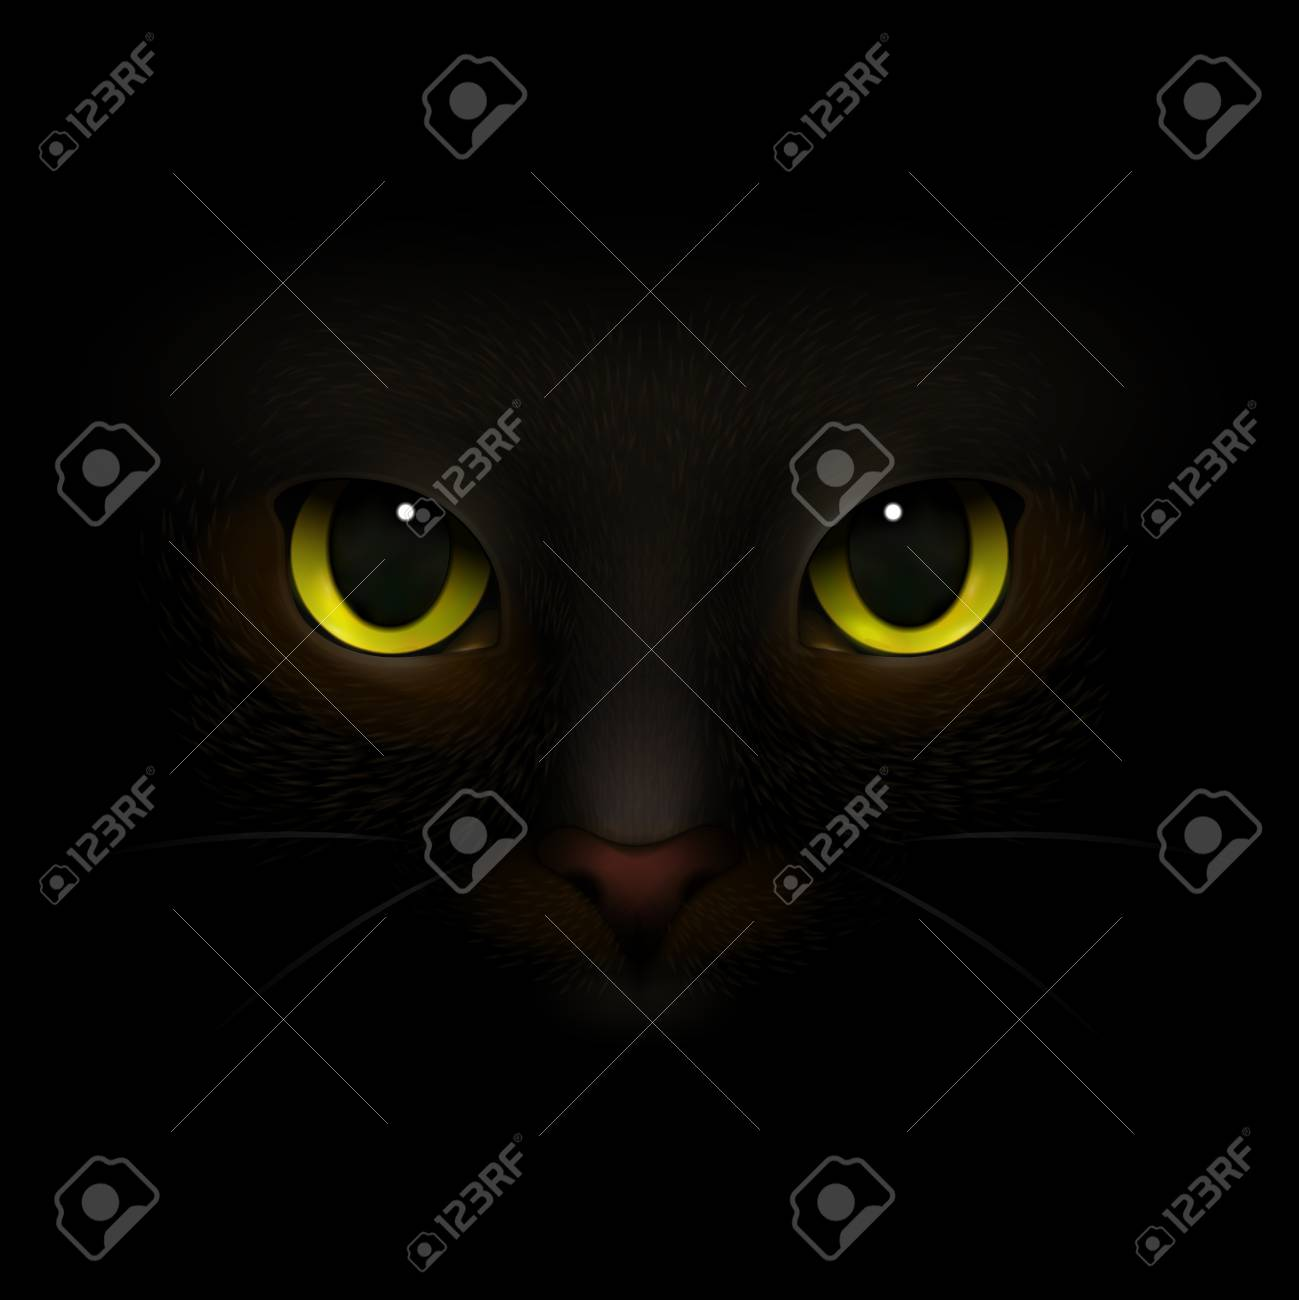 Animals Monsters Realistic Composition With Feline Eyes And Nose Royalty Free Cliparts Vectors And Stock Illustration Image 95058729